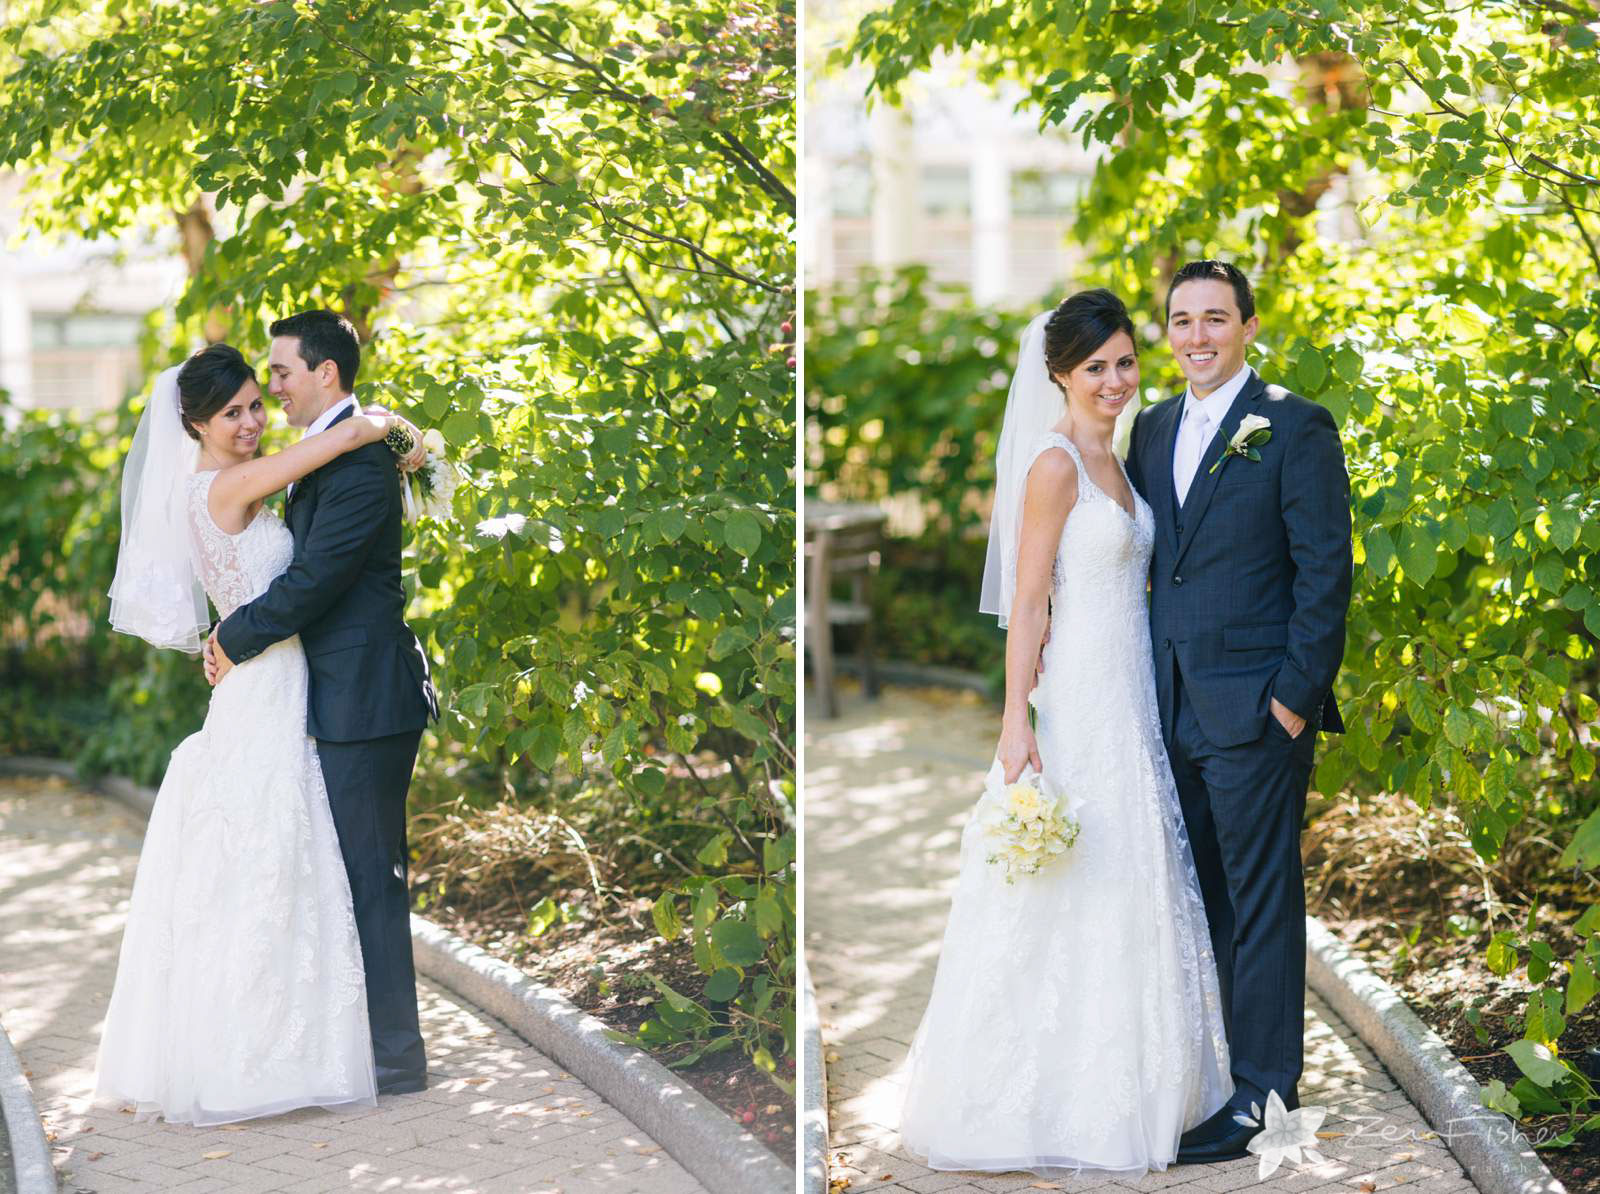 Bride and groom portraits in garden in the fall with soft natural light.